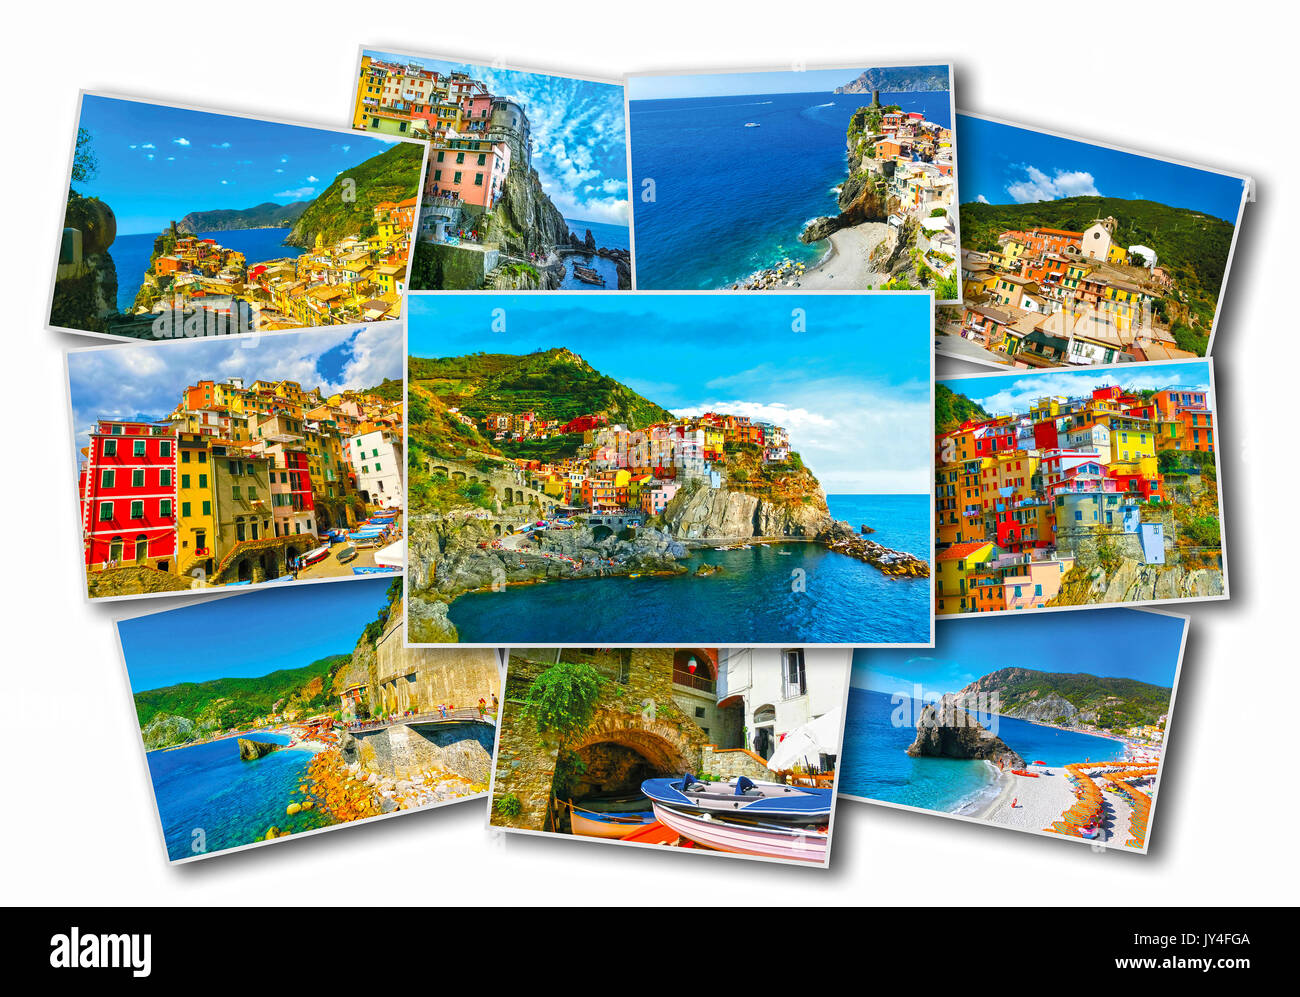 Collage of Cinque Terre photos in Italy - Stock Image